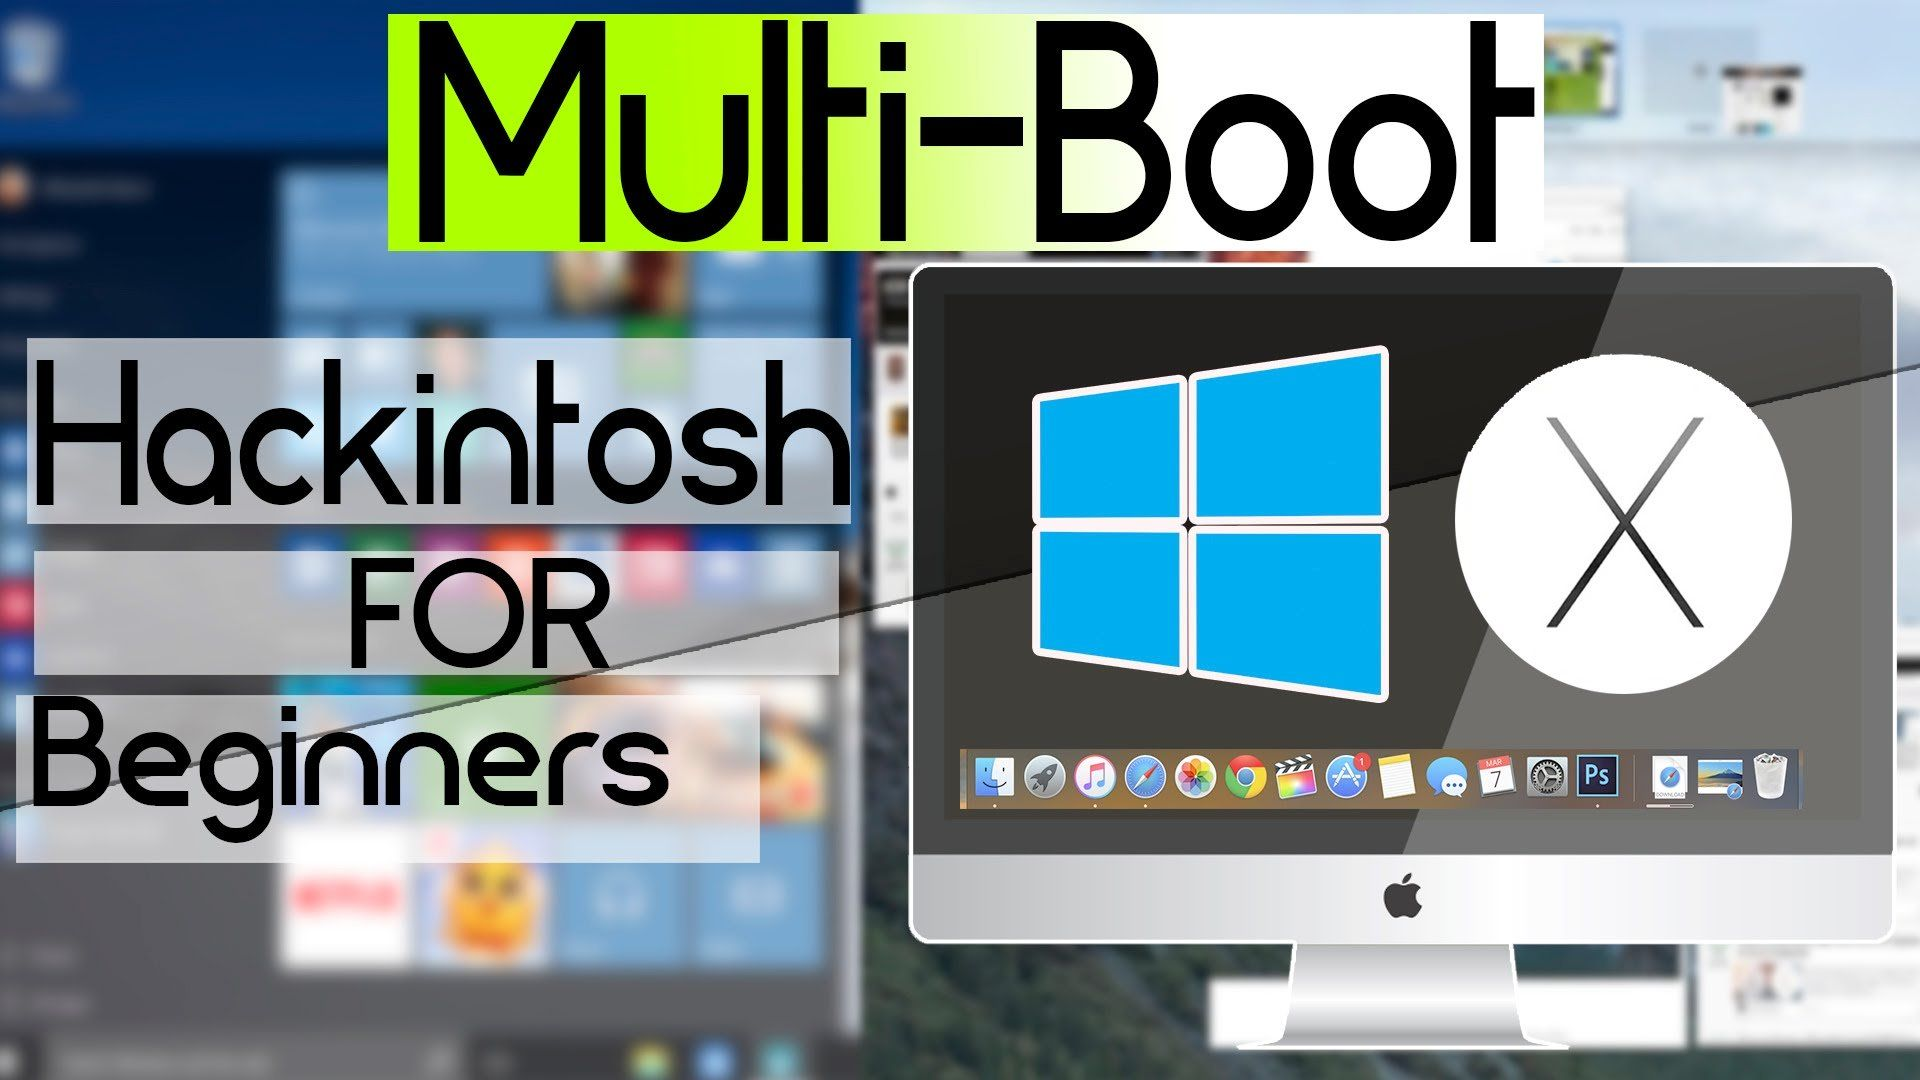 Boot Camp for Mac vs virtualization software